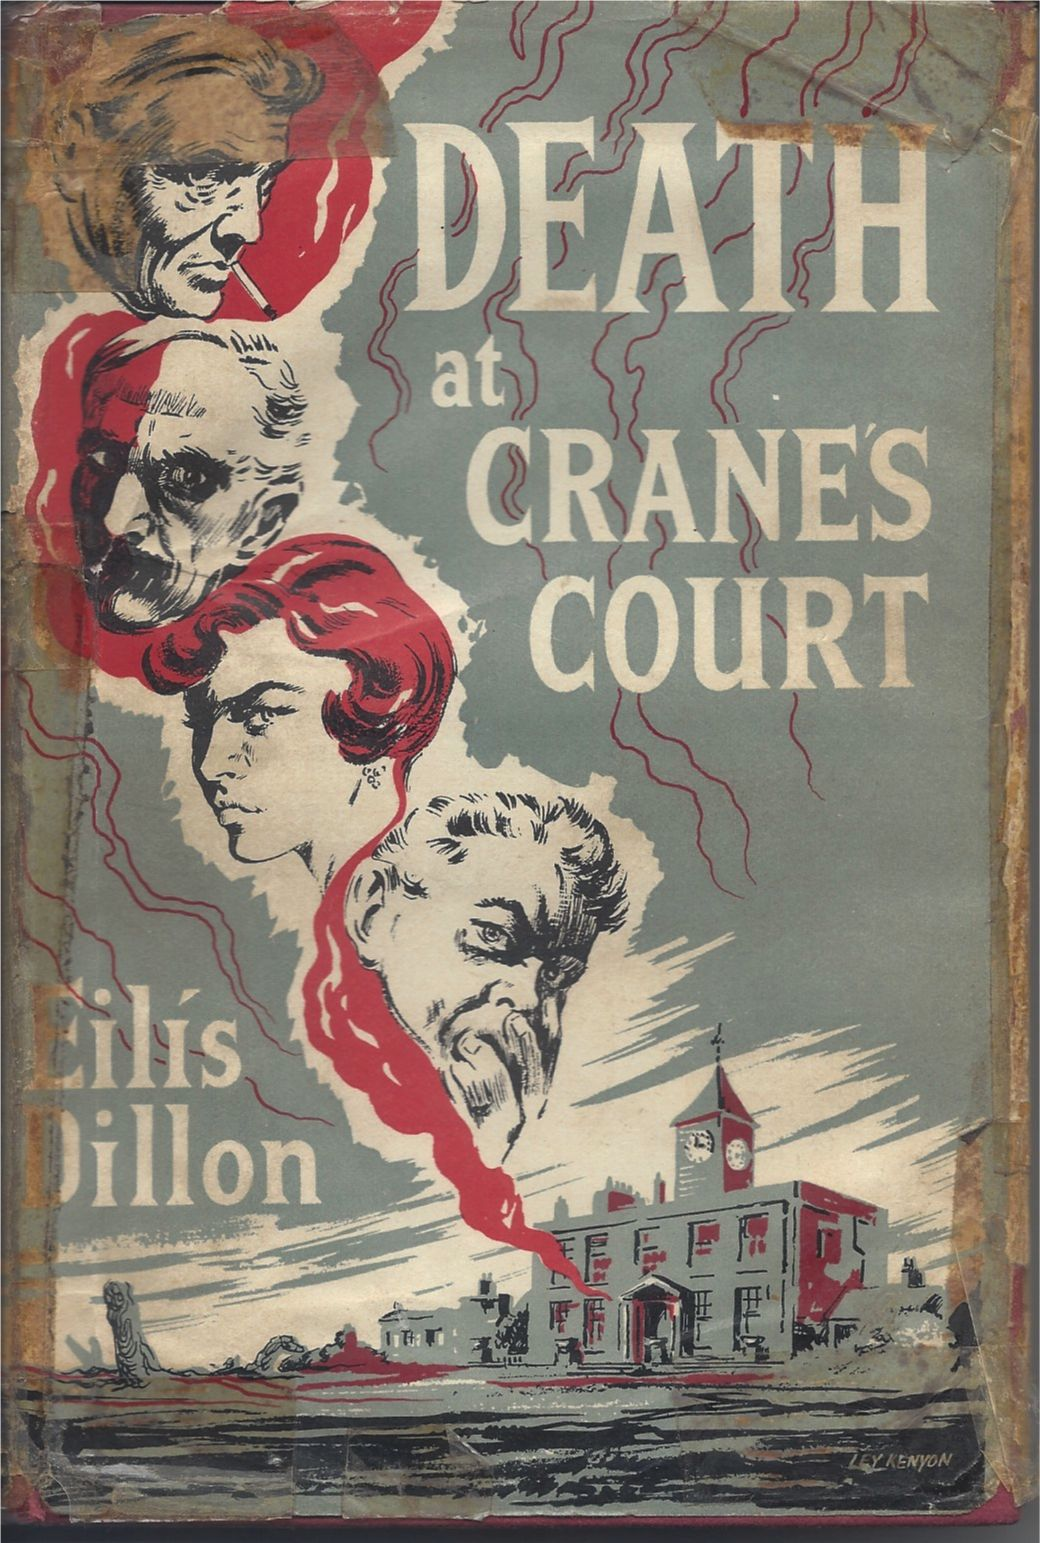 Death at Crane's Court, first edition